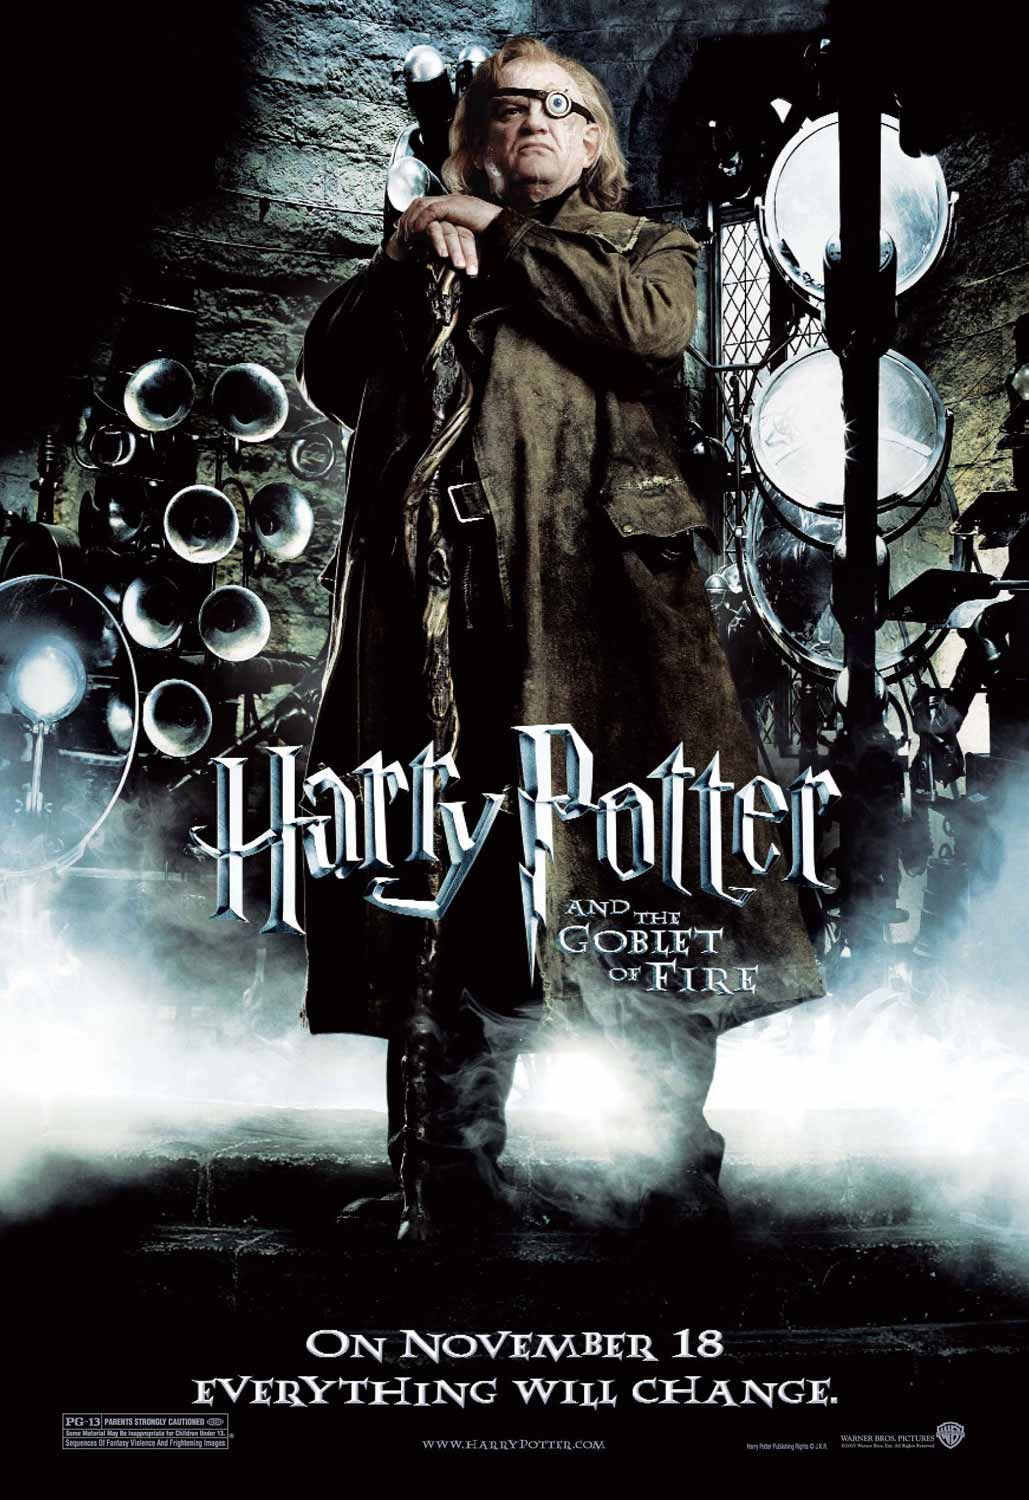 harry_potter_and_the_goblet_of_fire_poster_2005_01.jpg